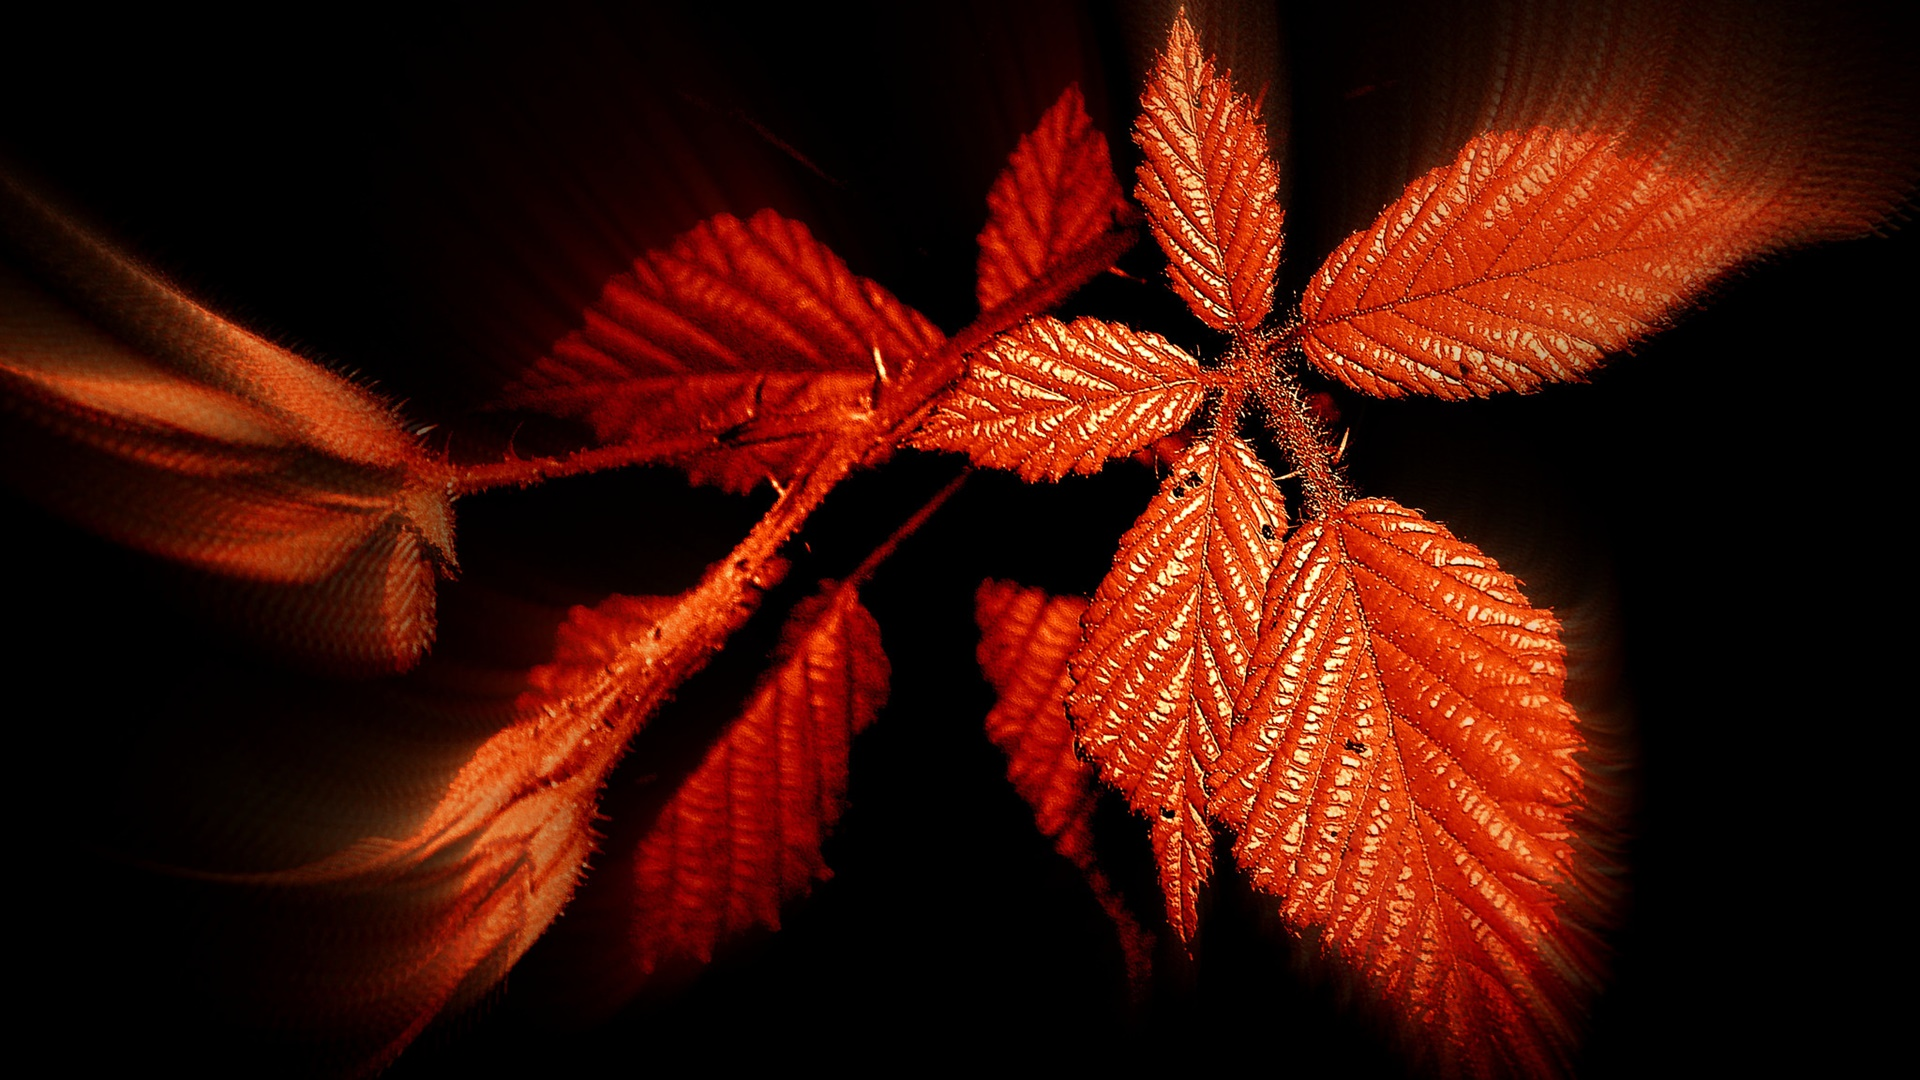 Autumn, red leaves, black background 1920x1080 wallpaper